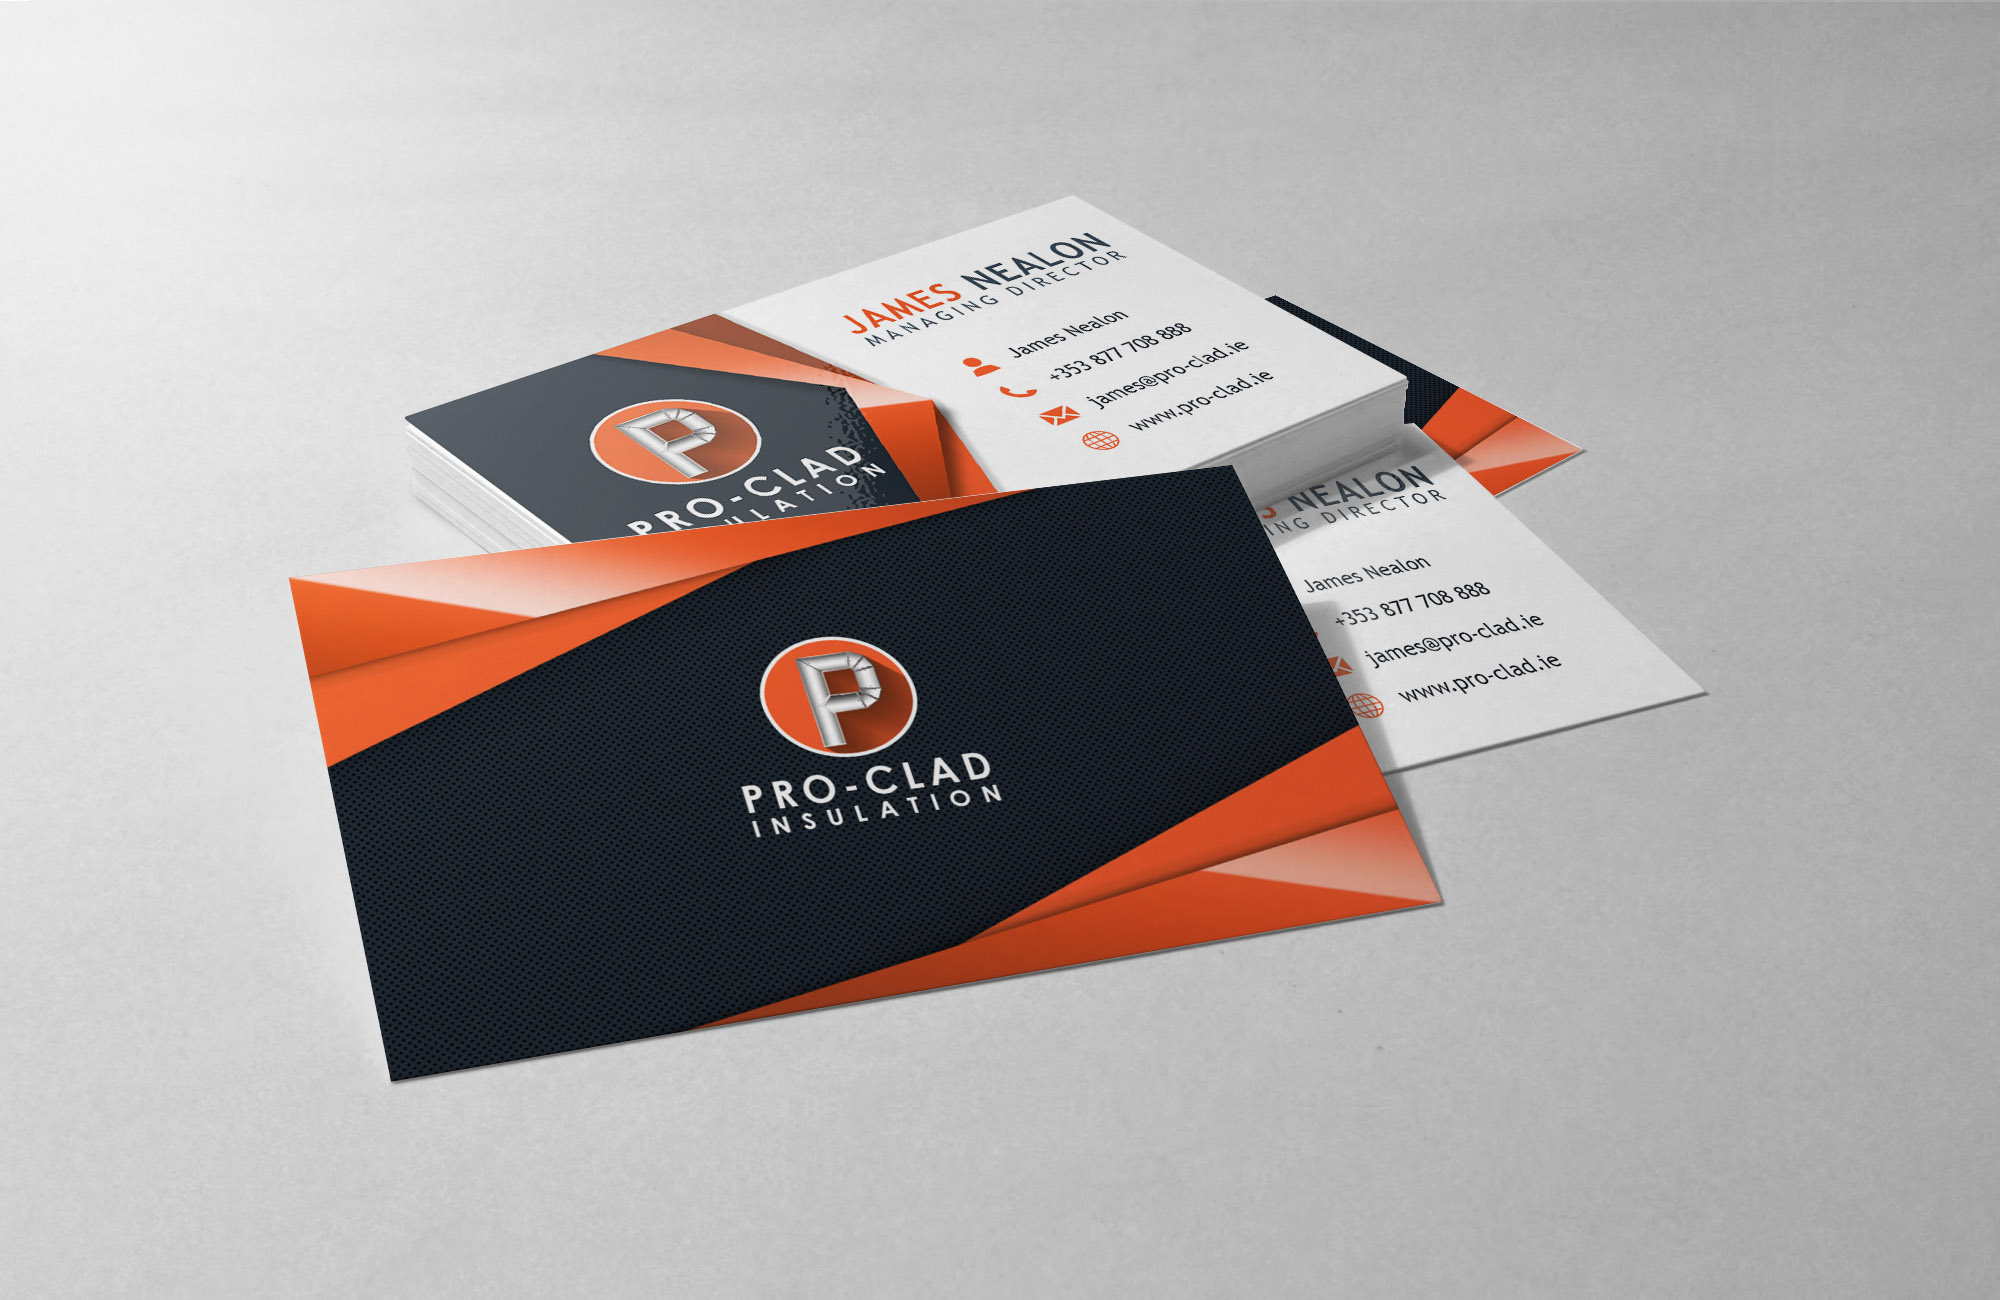 Pro-Clad Business Cards